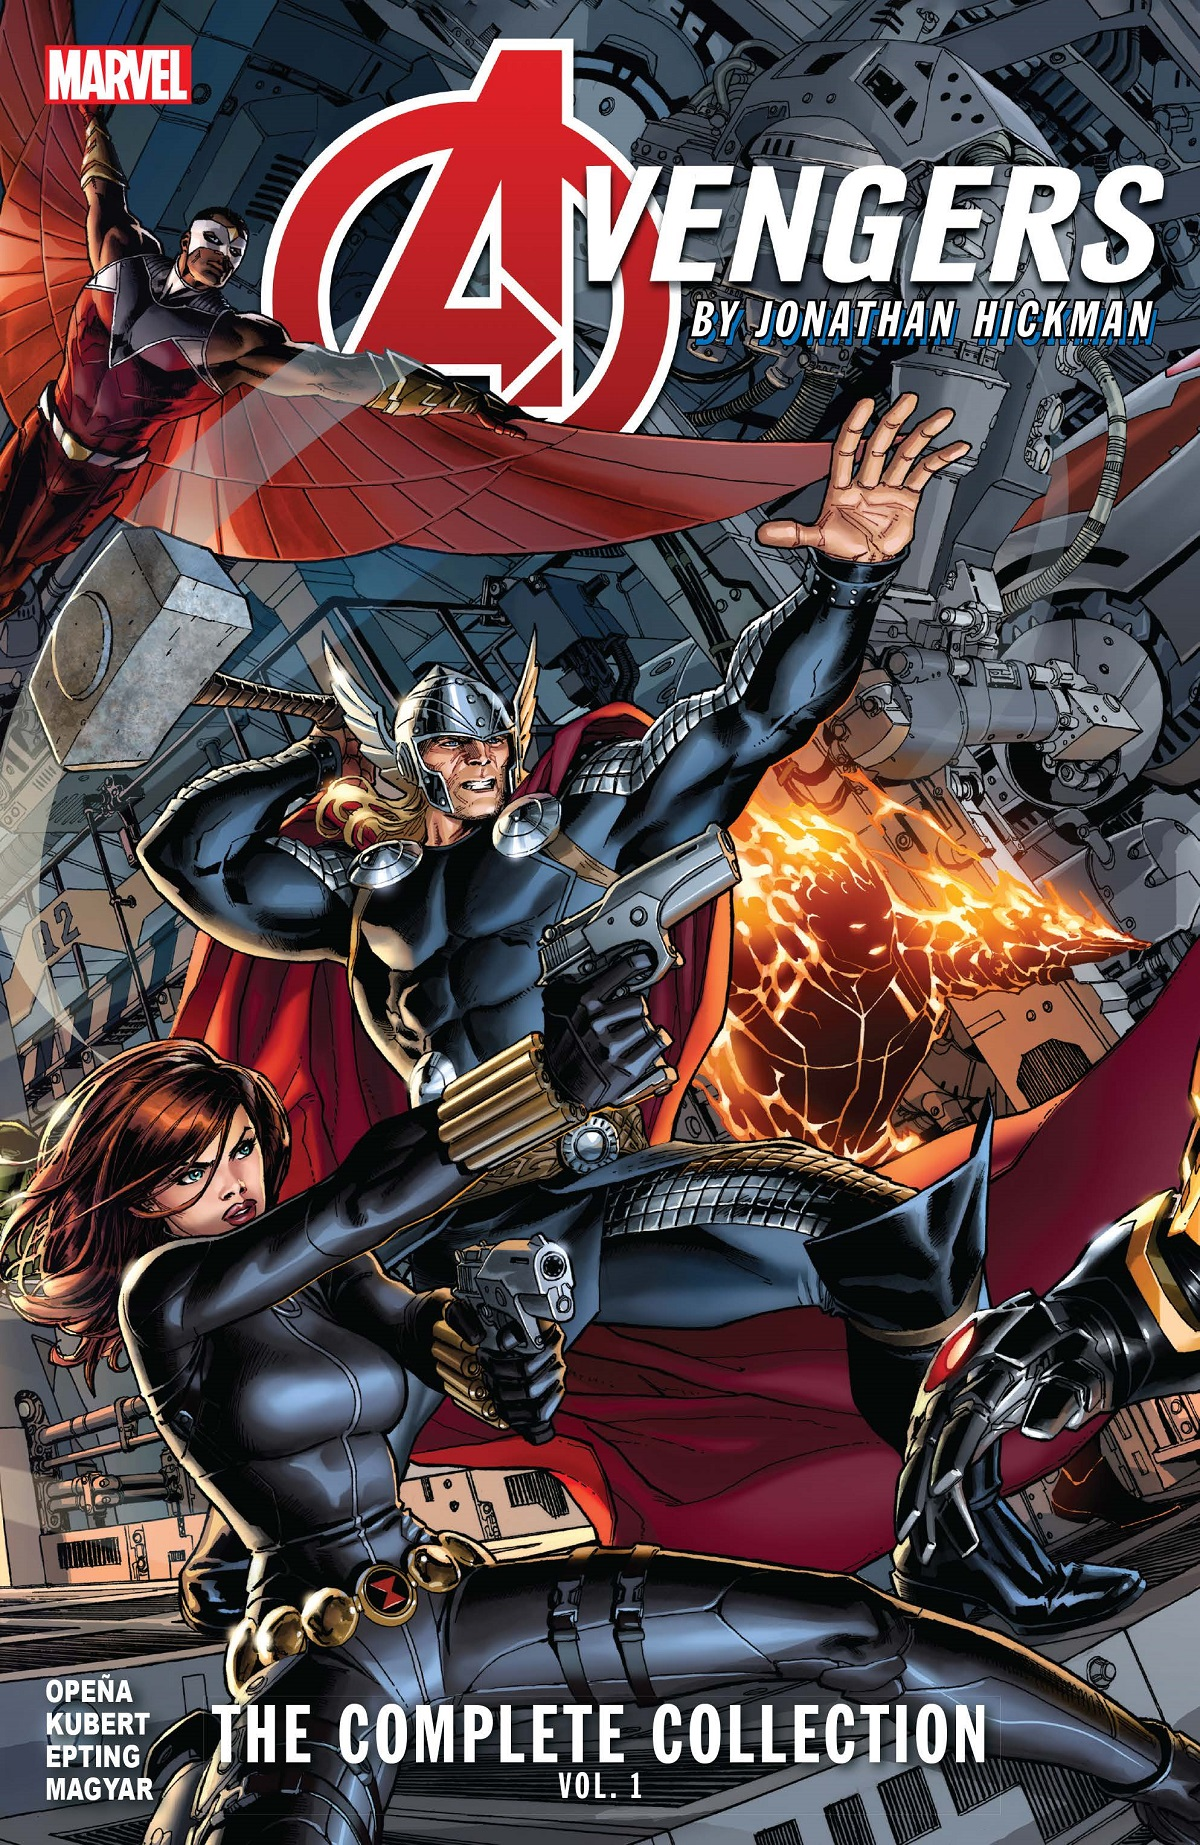 Avengers By Jonathan Hickman: The Complete Collection Vol. 1 (Trade Paperback)